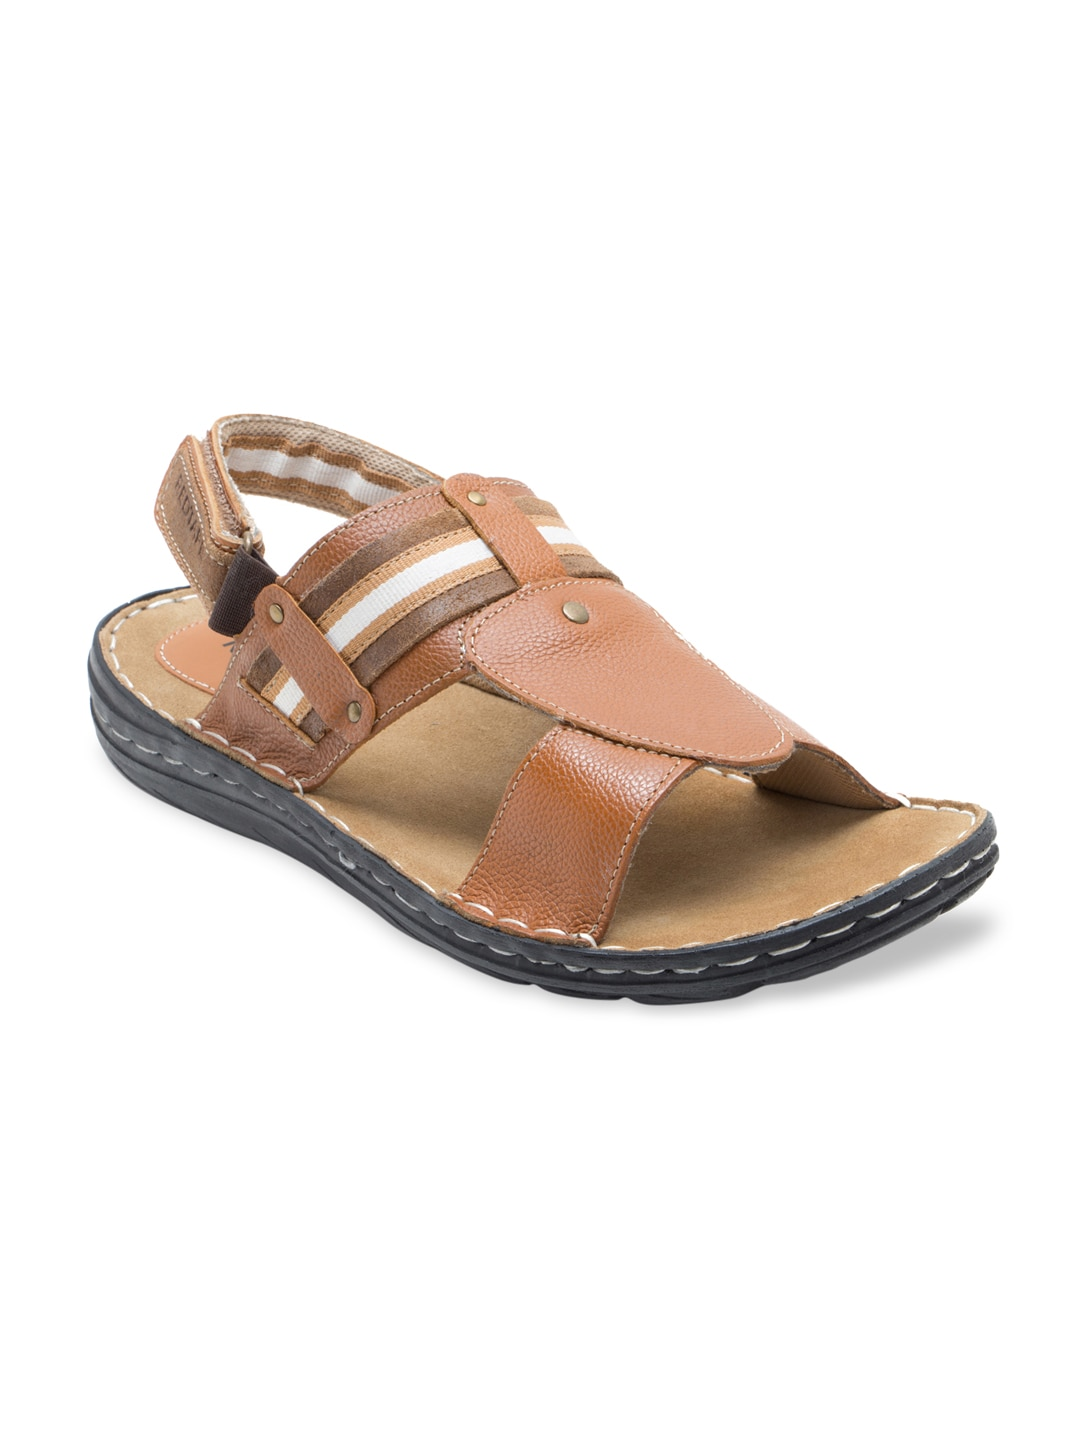 Tape Red Tan Men Sandals Leather Brown lKcT1JF